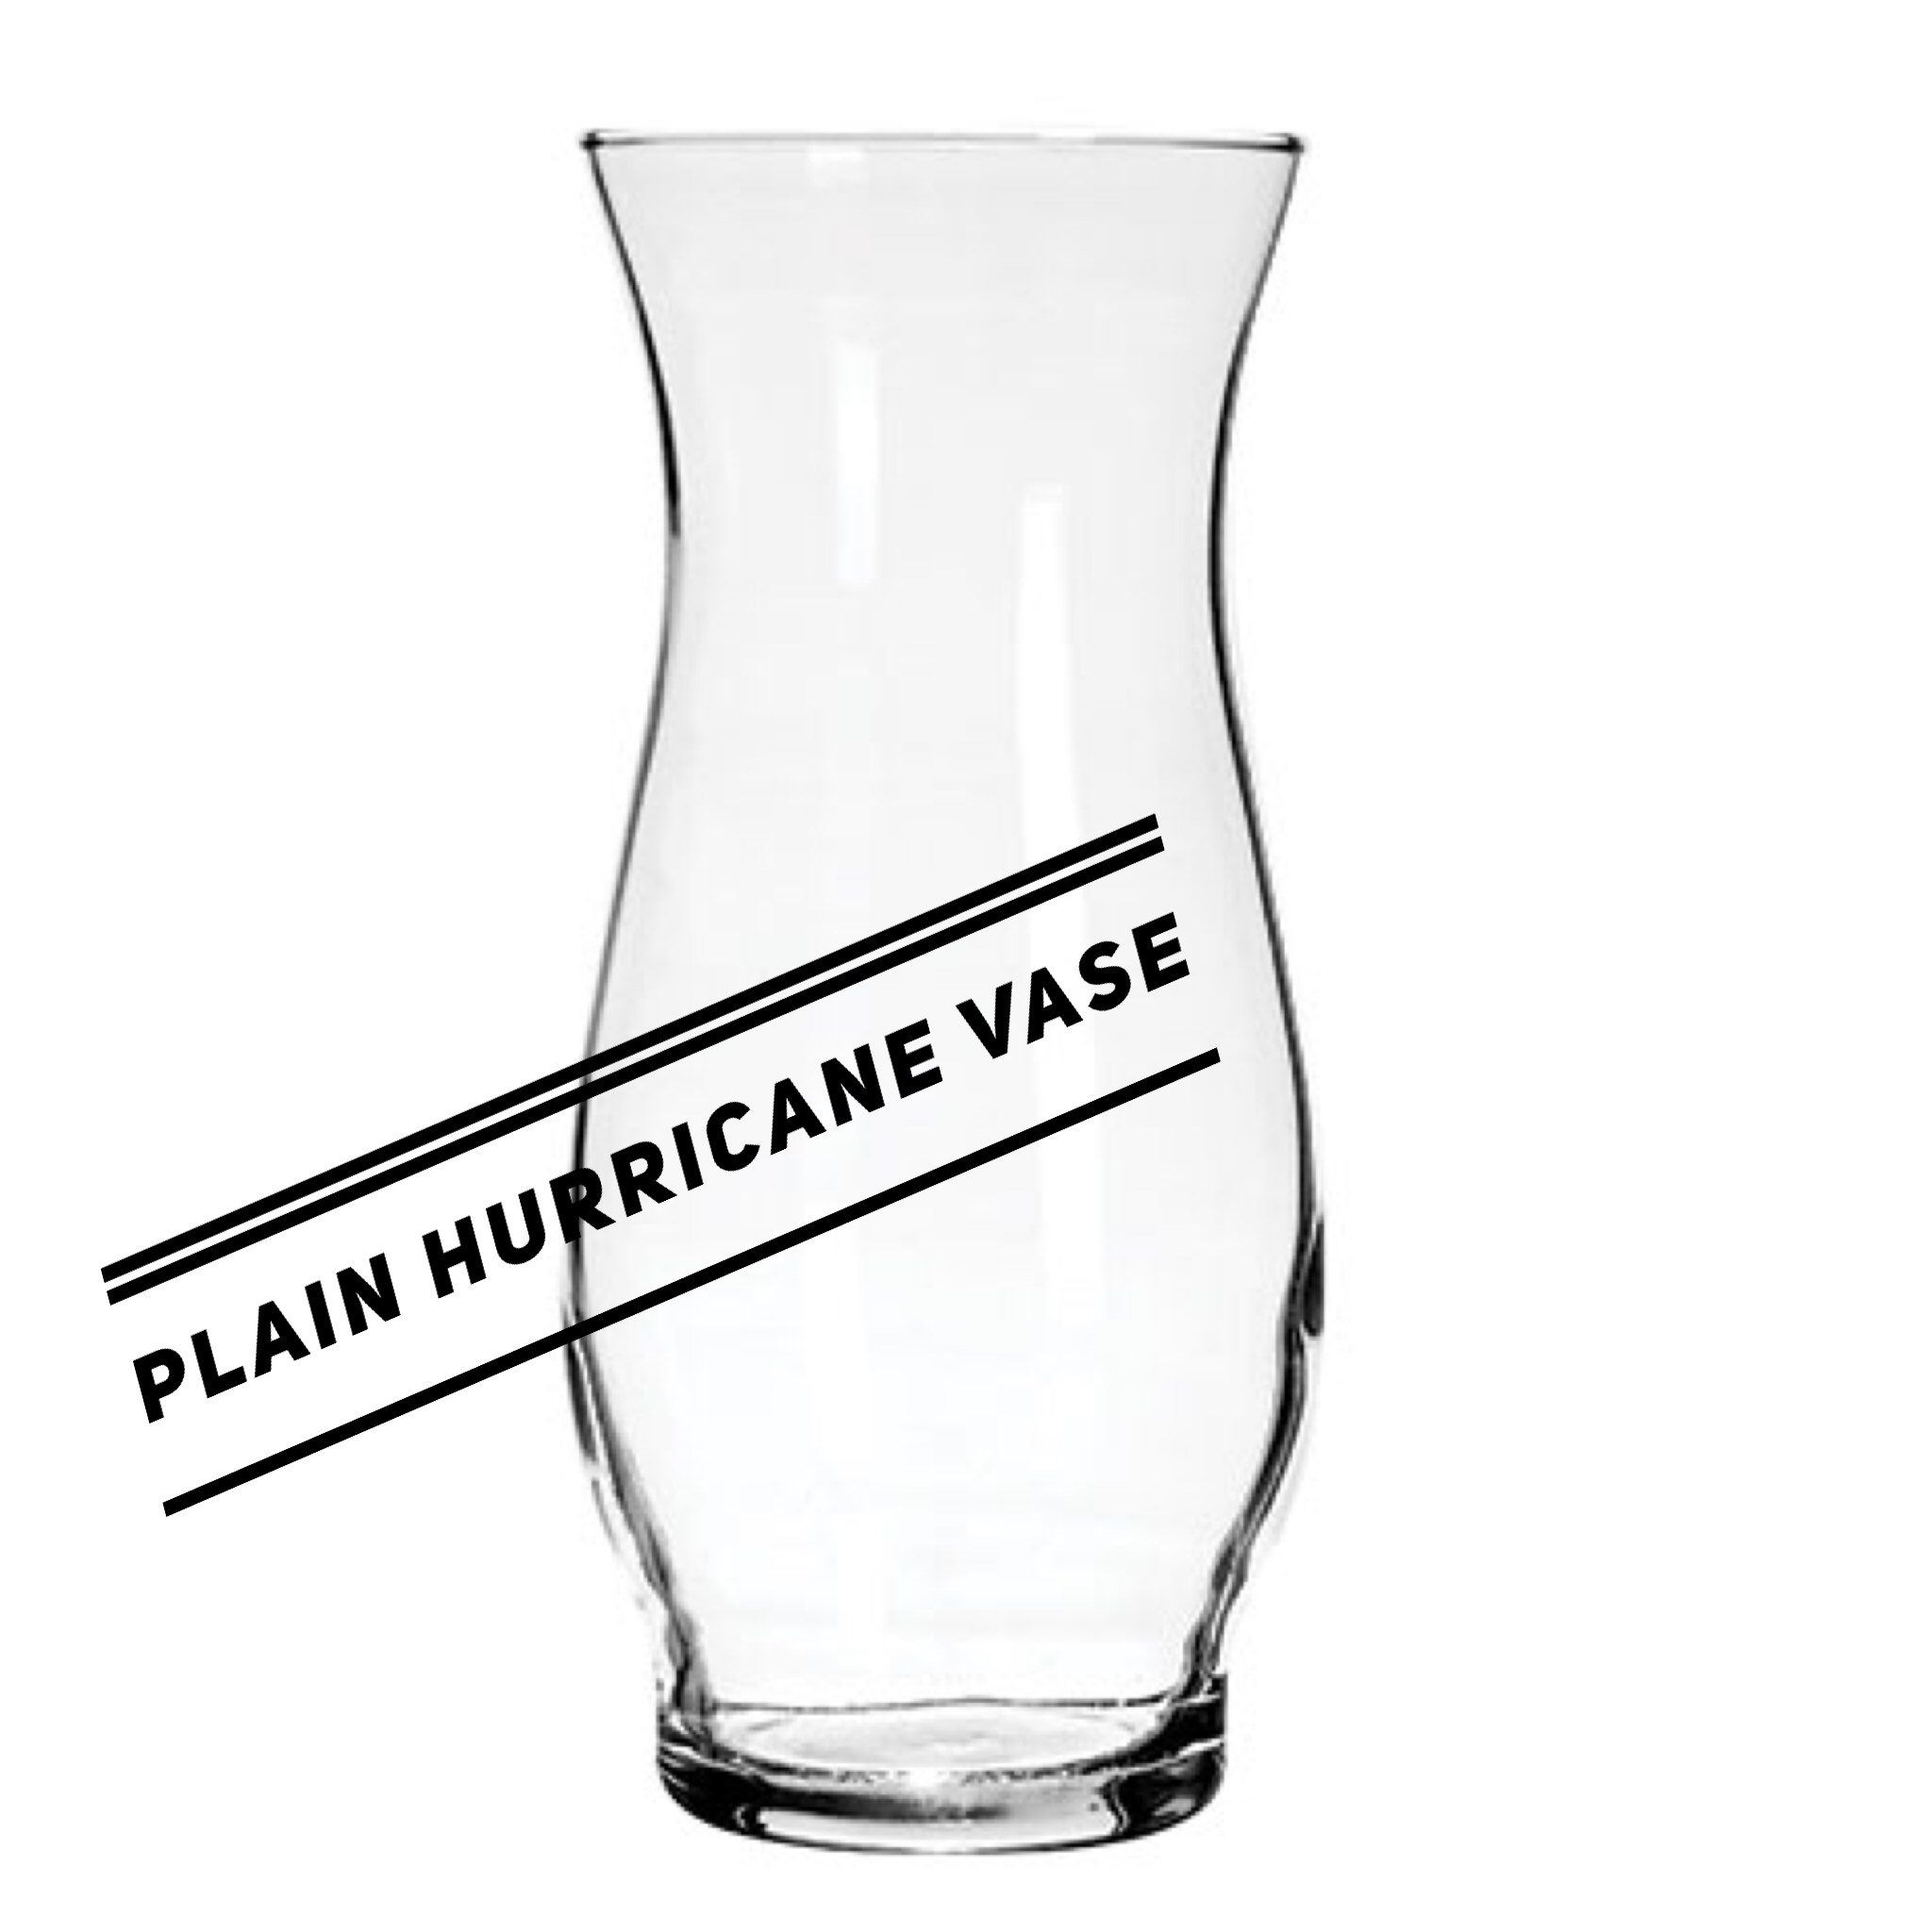 Custom Or Plain Glass Hurricane Vase S Decor For Party Or Wedding Personalize Vinyl Etch Design Floral 6 5 H Hurricane Glass Glass Hurricane Vase